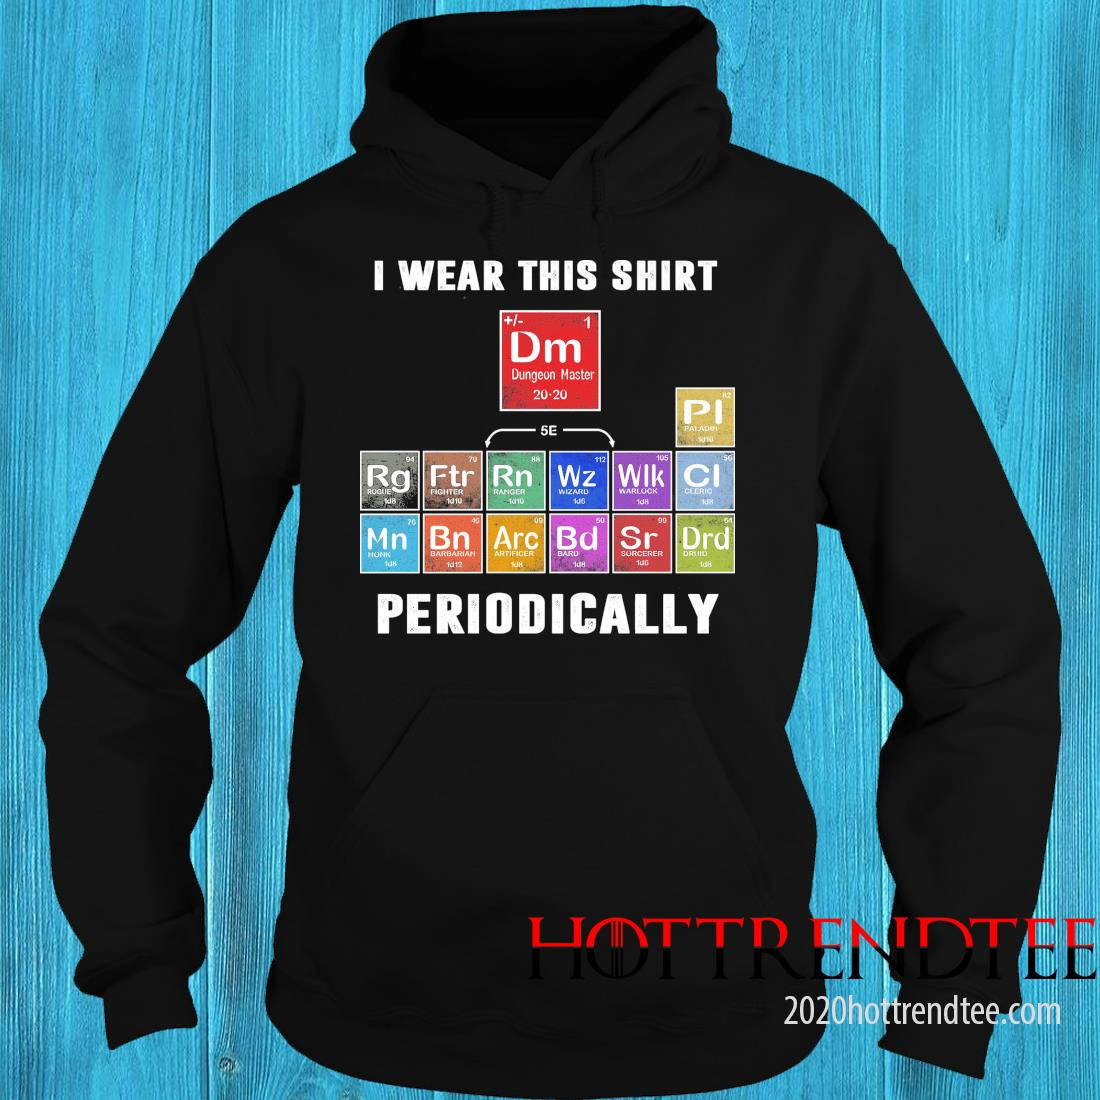 Periodically I Wear This Shirt hoodie